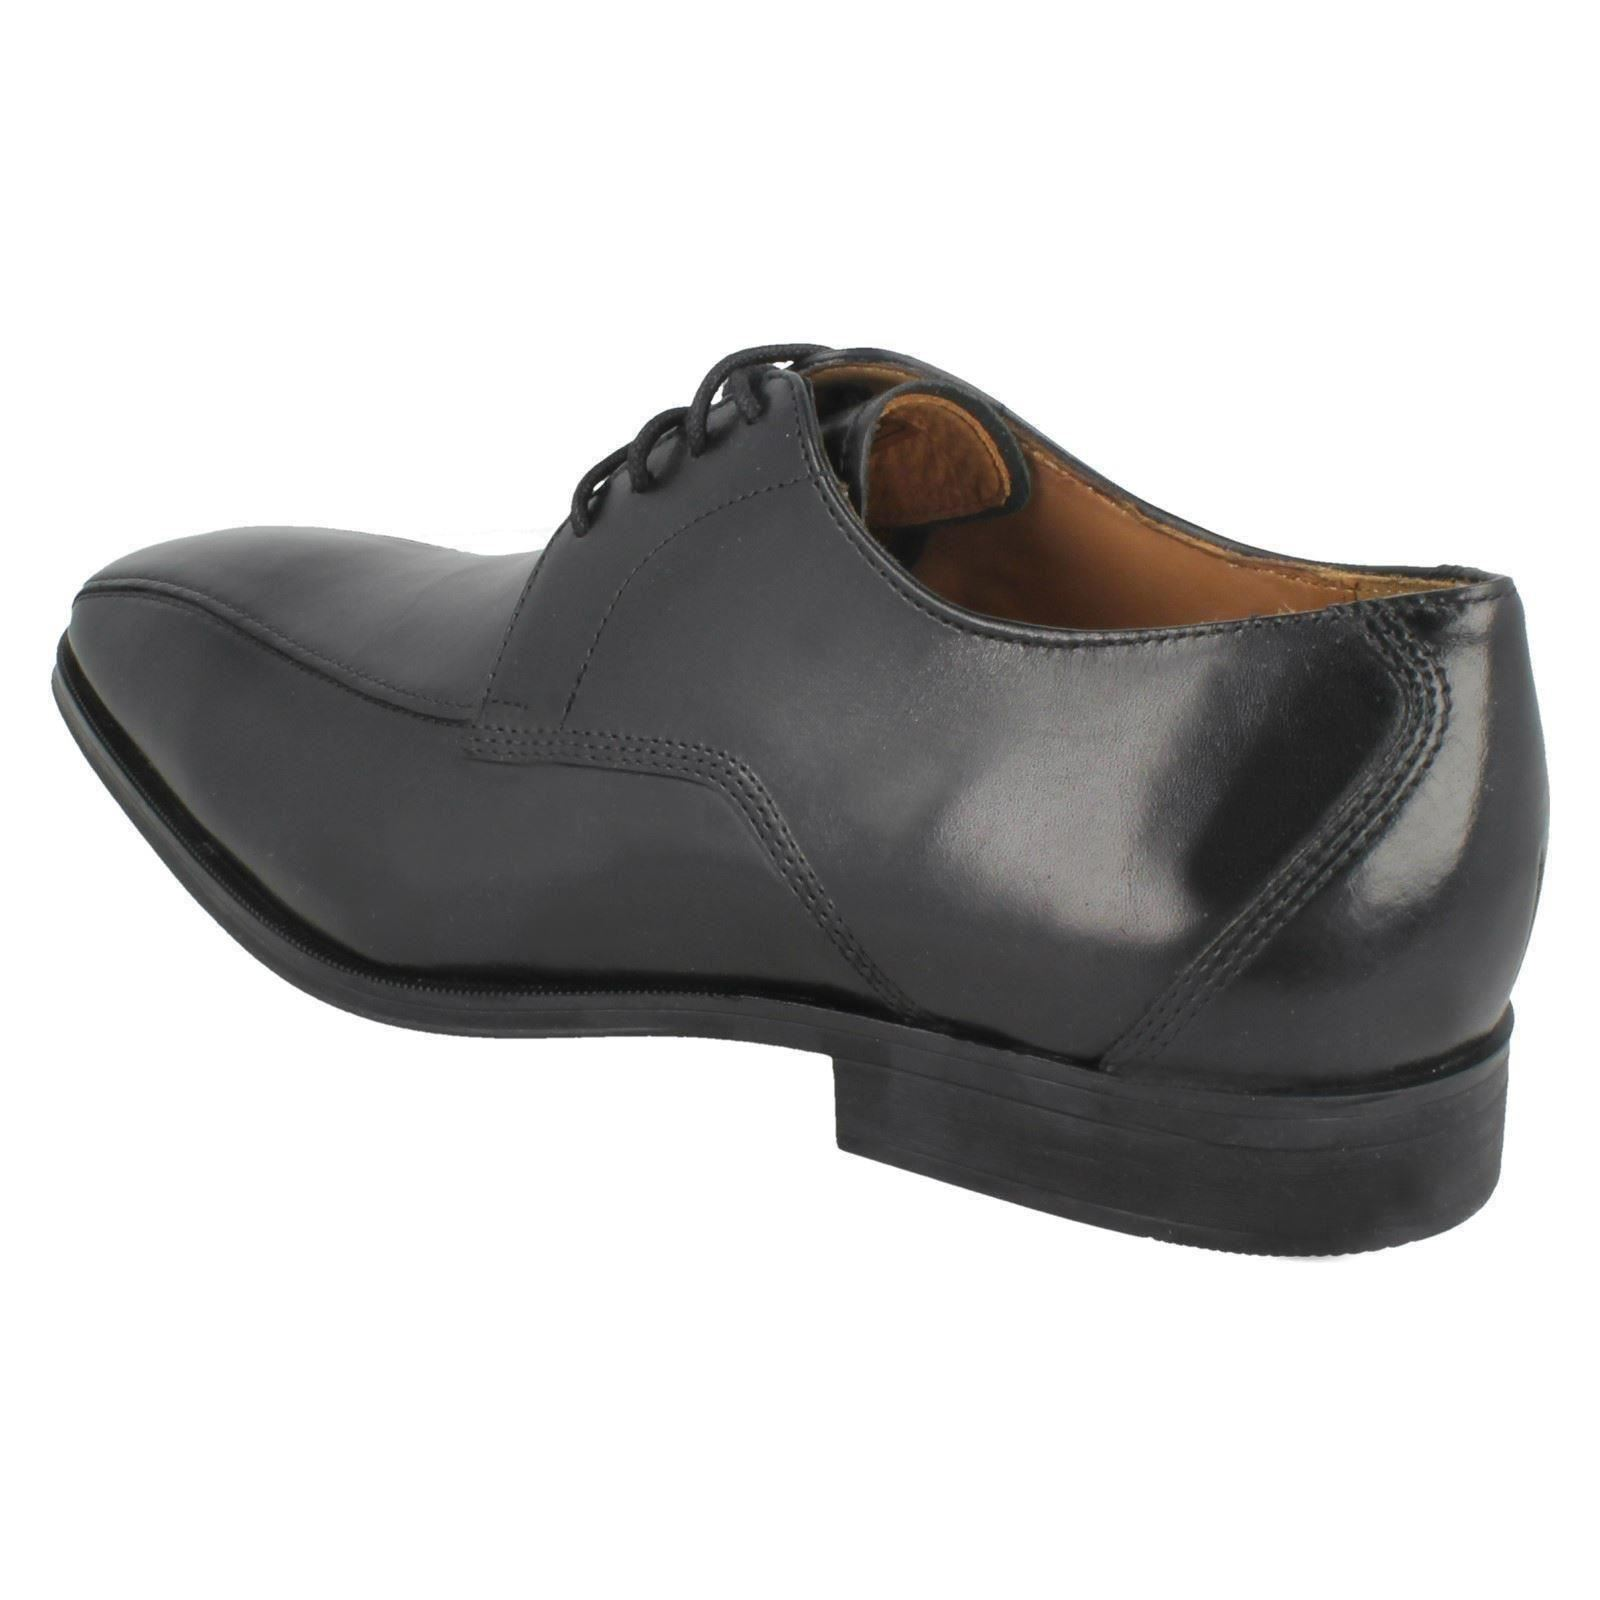 Clarks Formelles Chaussures Hommes Mode Gilman agnrazqwv